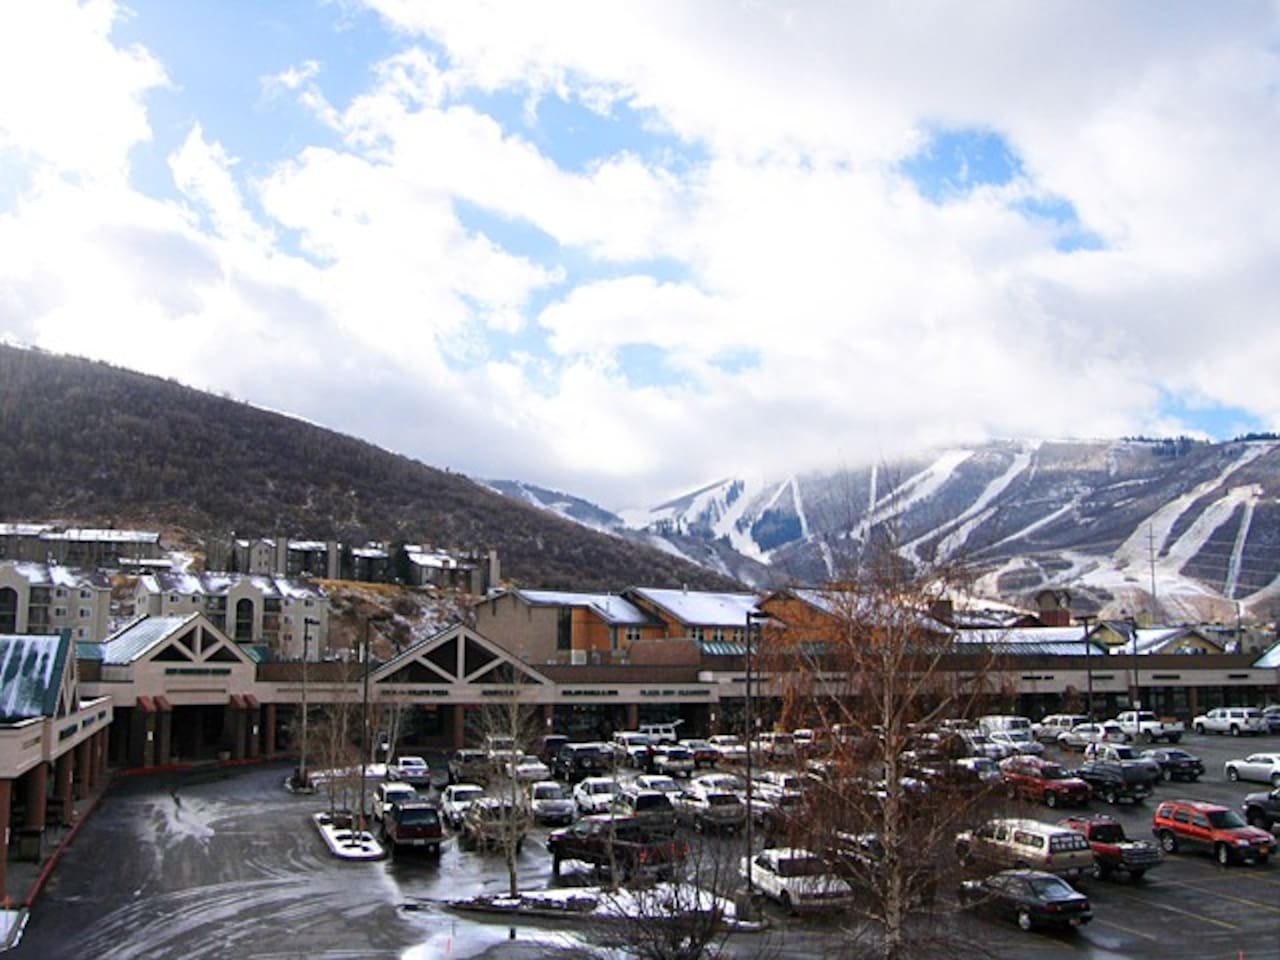 Perfect location for seasonal skiing and snowboarding!!  Only a few minutes from Main street, the shopping Outlets, Wholefoods and other grocery stores. Minutes away from local restaurants,  breweries, and shopping. Also home of the Annual Sundance Film Festival. Only   20-30 min away from downtown Salt Lake City.